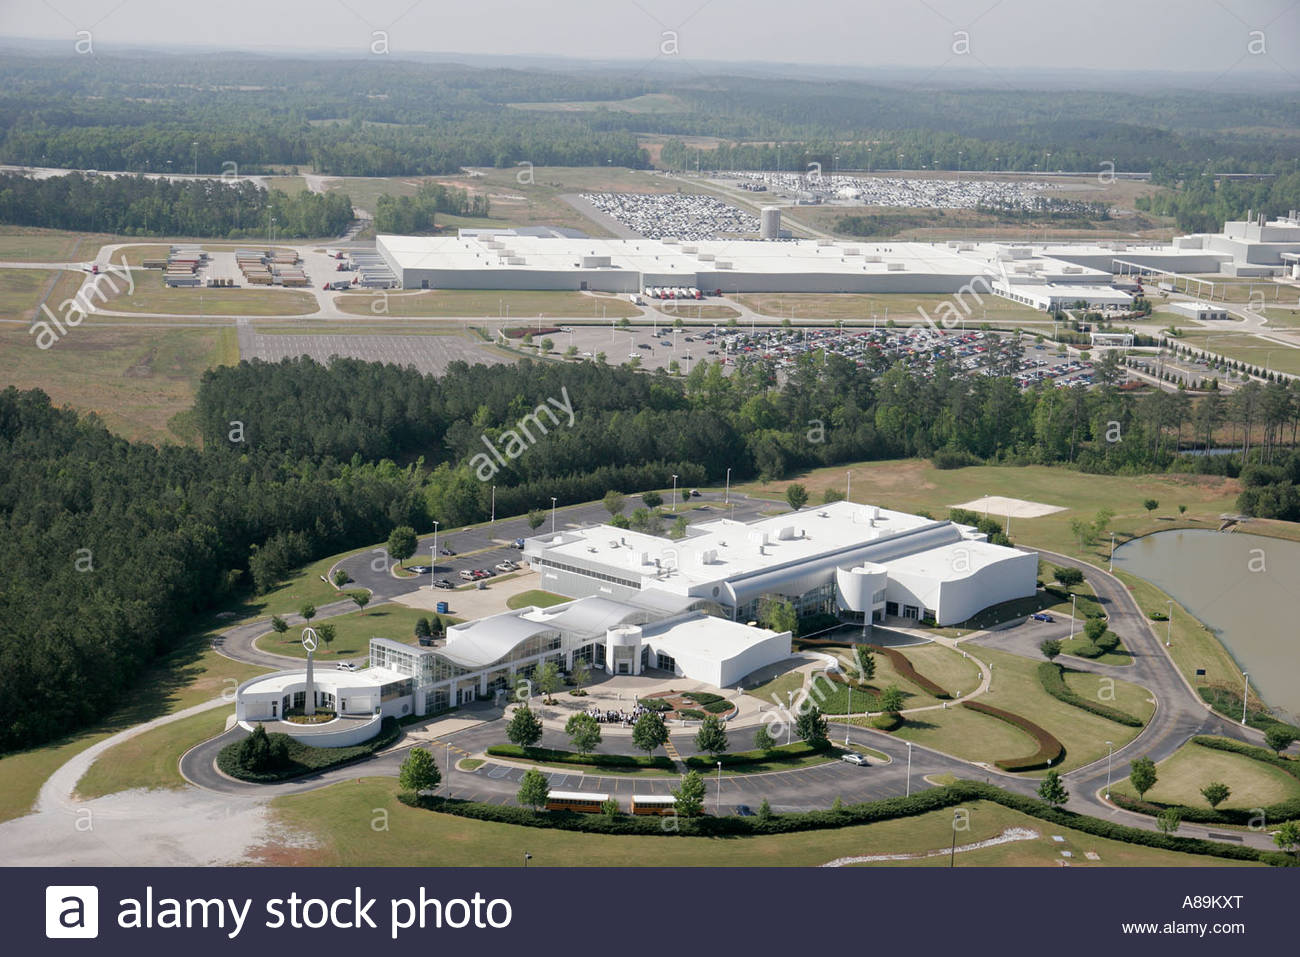 Alabama vance mercedes benz german suv manufacturing plant for Mercedes benz huntsville al